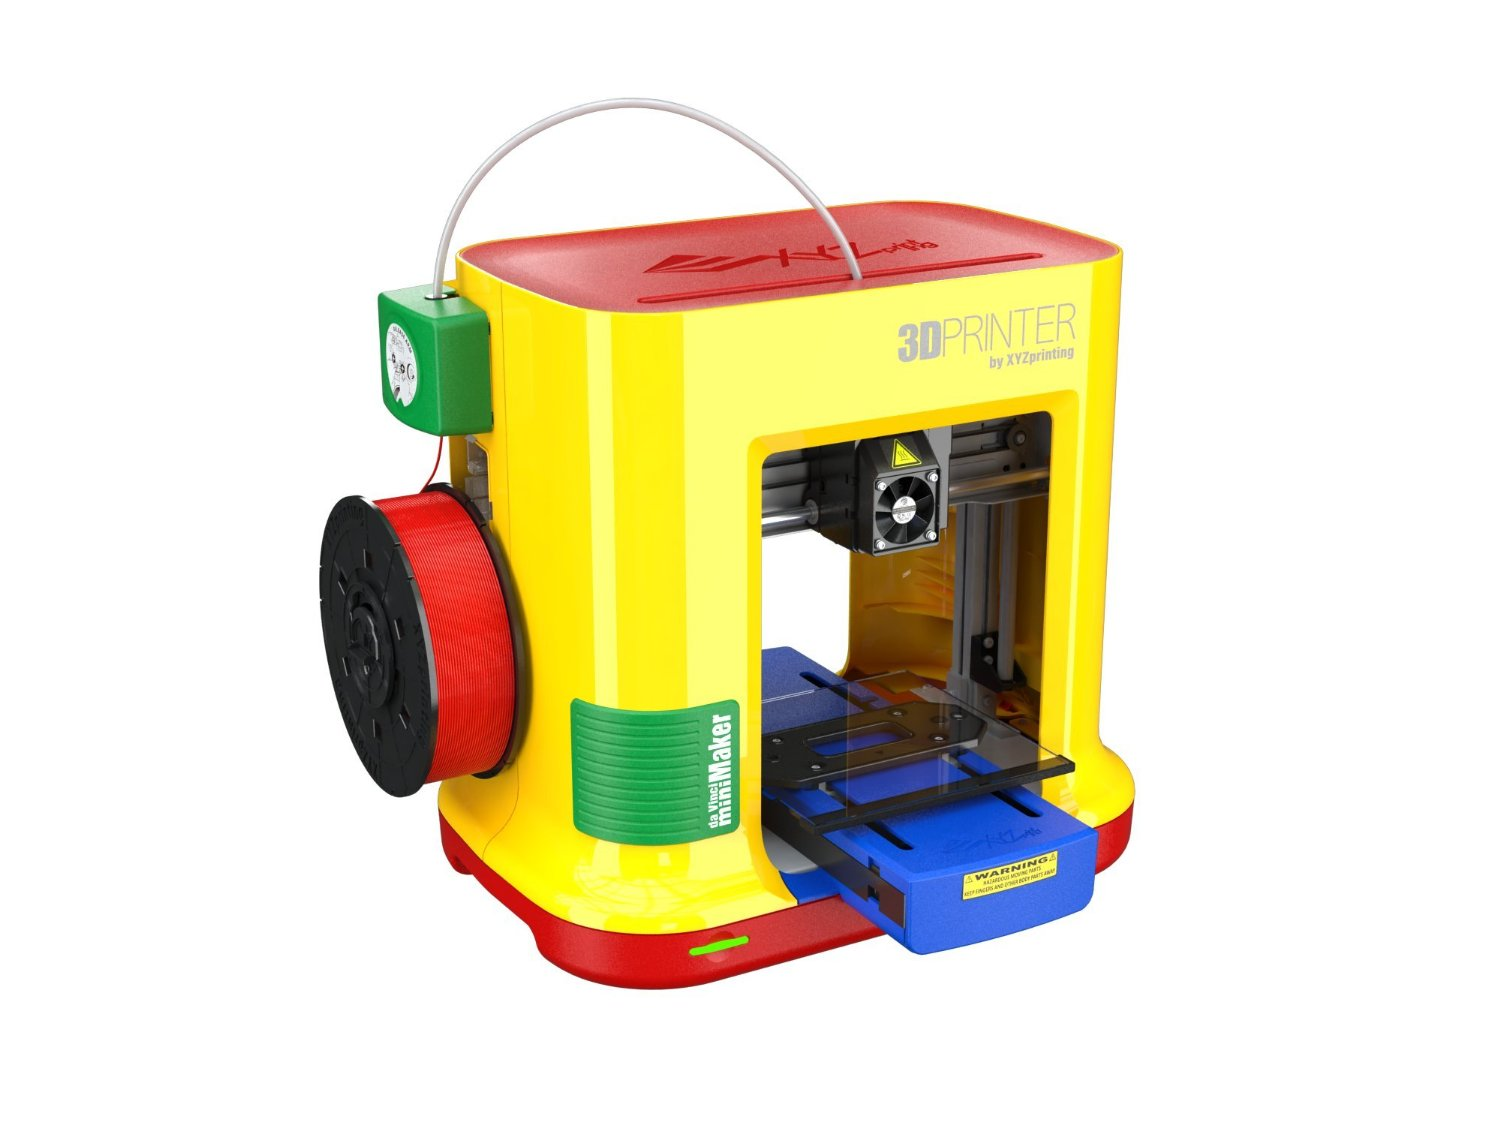 News: XYZprinting da Vinci miniMaker 3D printer available for $229.99 pre-order